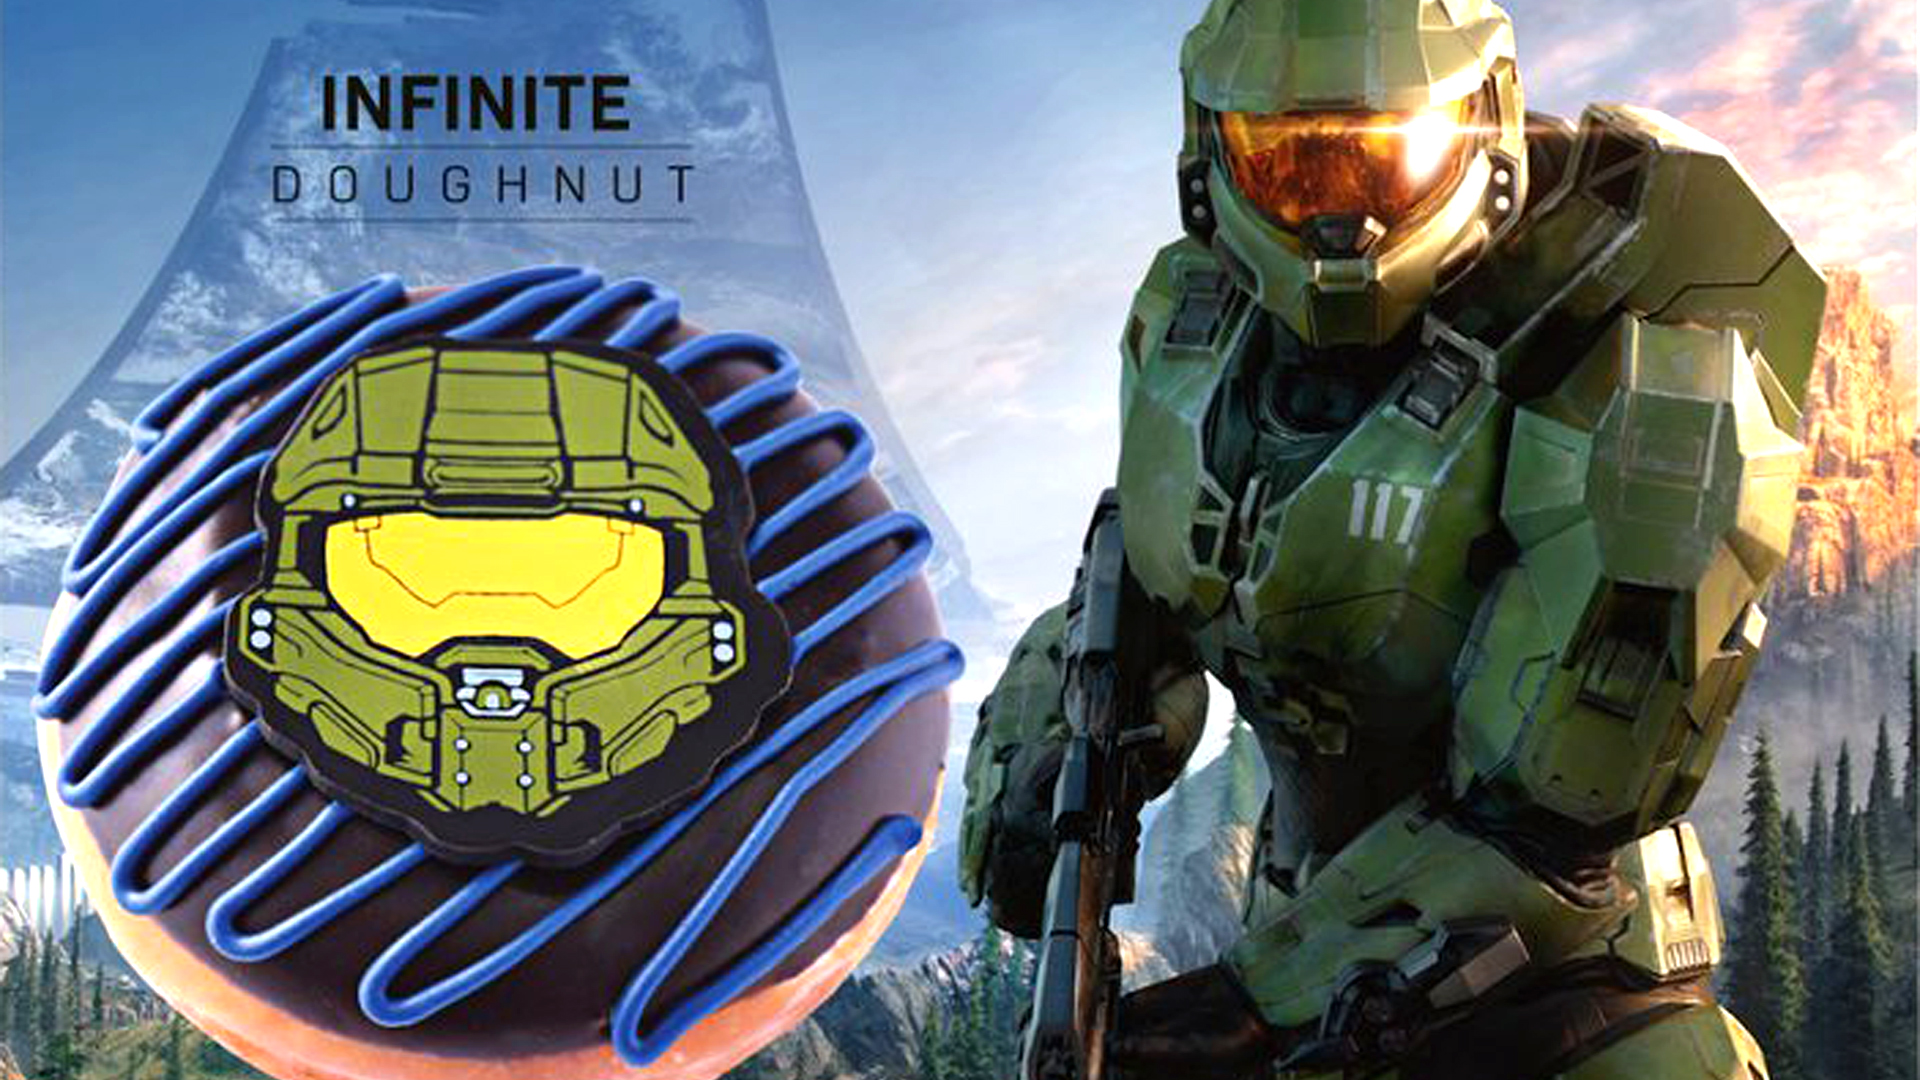 Halo Infinite's release month may have been leaked by Xbox and Krispy Kreme